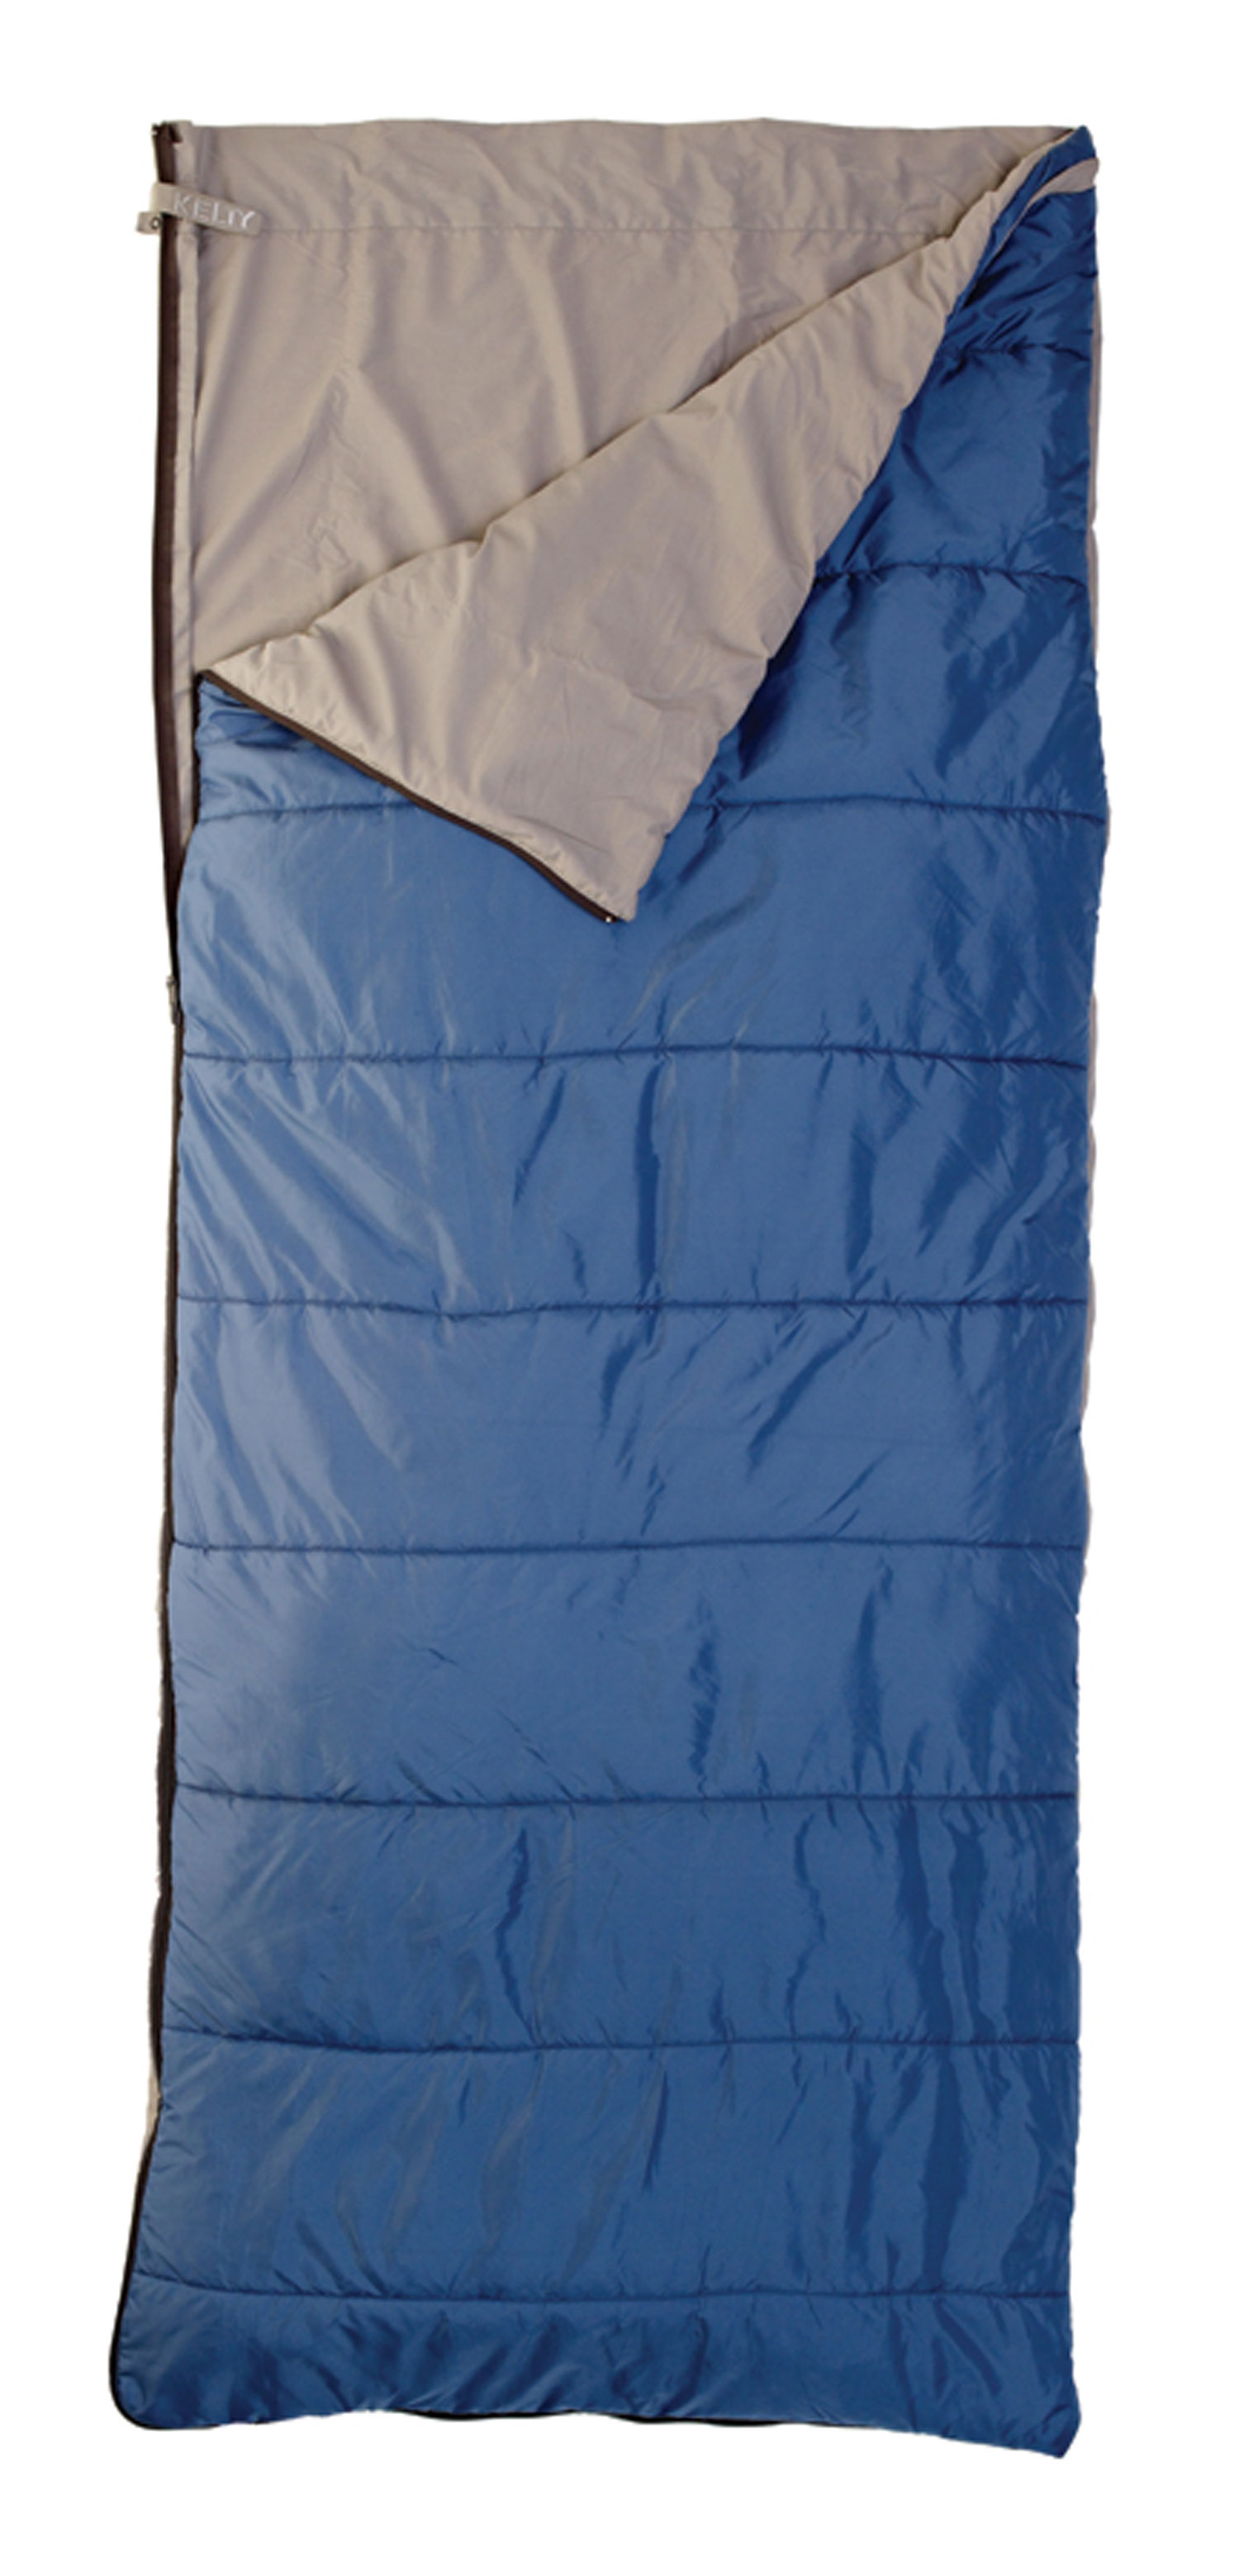 Camp and Hike The Celestial 55 degrees is the adaptable, go-to bag for summer when the temperatures fluctuate. The insulation on one side is for cool evenings, and the poly-cotton sheet on the other side is for warmer ones.Key Features of the Kelty Celestial 55 Degree Regular Sleeping Bag: Quilt-shell, loose-liner construction Two-way, locking blanket zipper Can be fully unzipped and opened flat for use as a blanket Internal liner loops External snap loops allow bag to function as a liner Sleeping pad security loops Hang loops for storage Stuff sack included FatMan and Ribbon drawcords Captured cordlock Fits to: 6ft/ 183cm Length: 75in/ 191cm Shoulder girth: 64in/ 163cm Fill weight: 11oz/ 0.31kg Total weight: 2 lbs 2oz/ .95kg Stuffed diameter: 7in/ 18cm Stuffed length: 15in/ 38cm Temp Rating: 30 degrees/ -1 degreesC Shape: Rectangular Insulation: Cloudloft Shell material: 75D Nylon Diamond ripstop Liner material: Polyester-cotton - $33.95